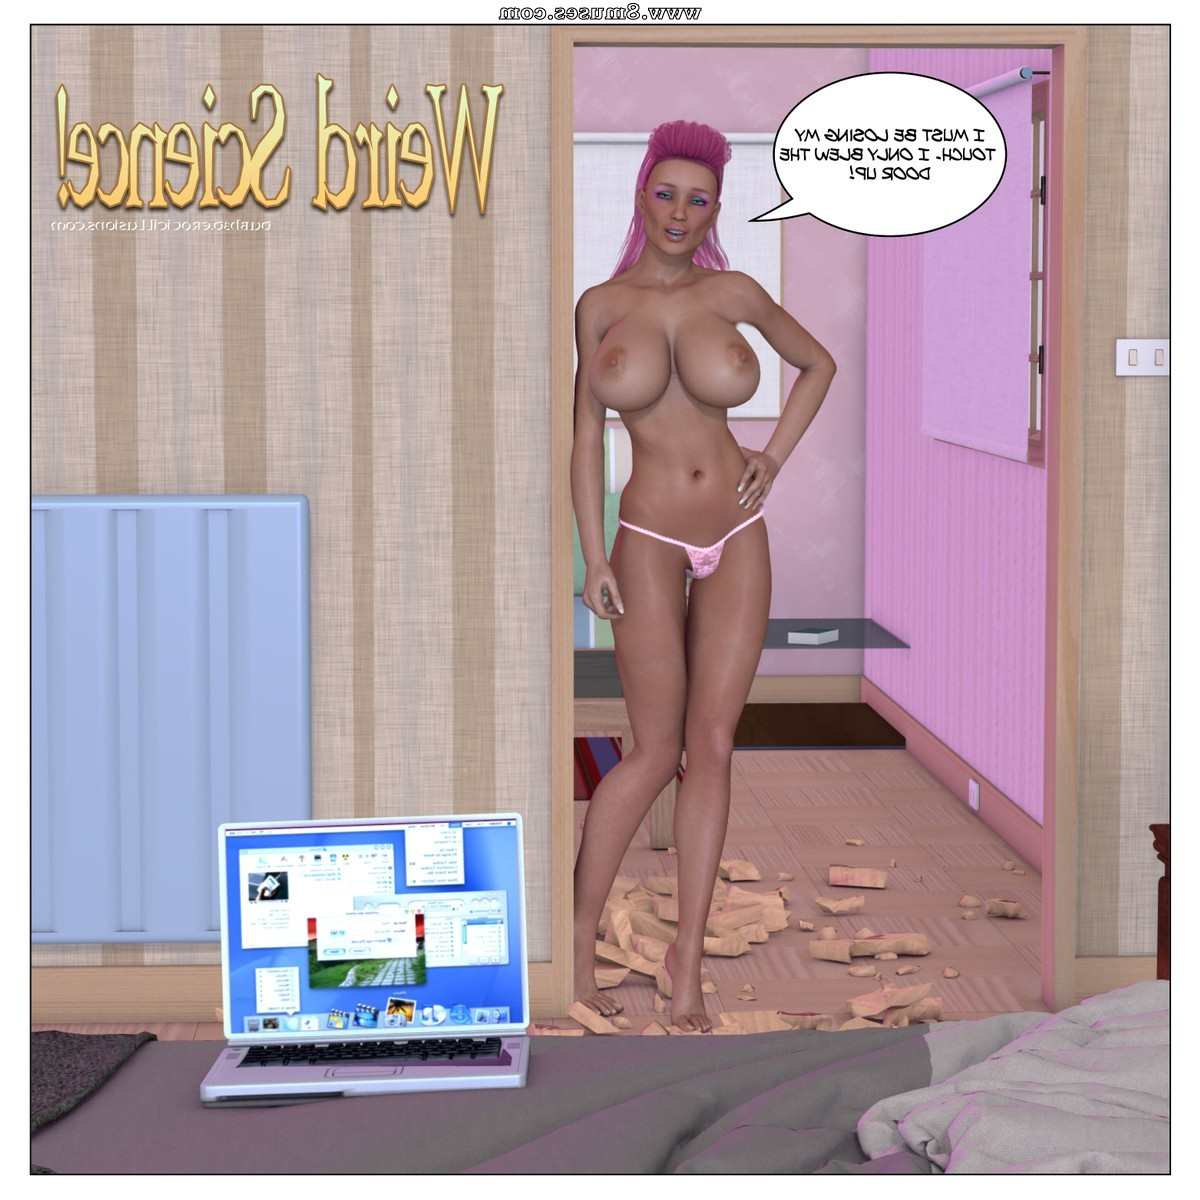 Dubh3d-Dubhgilla-Comics/Weird-Science Weird_Science__8muses_-_Sex_and_Porn_Comics.jpg